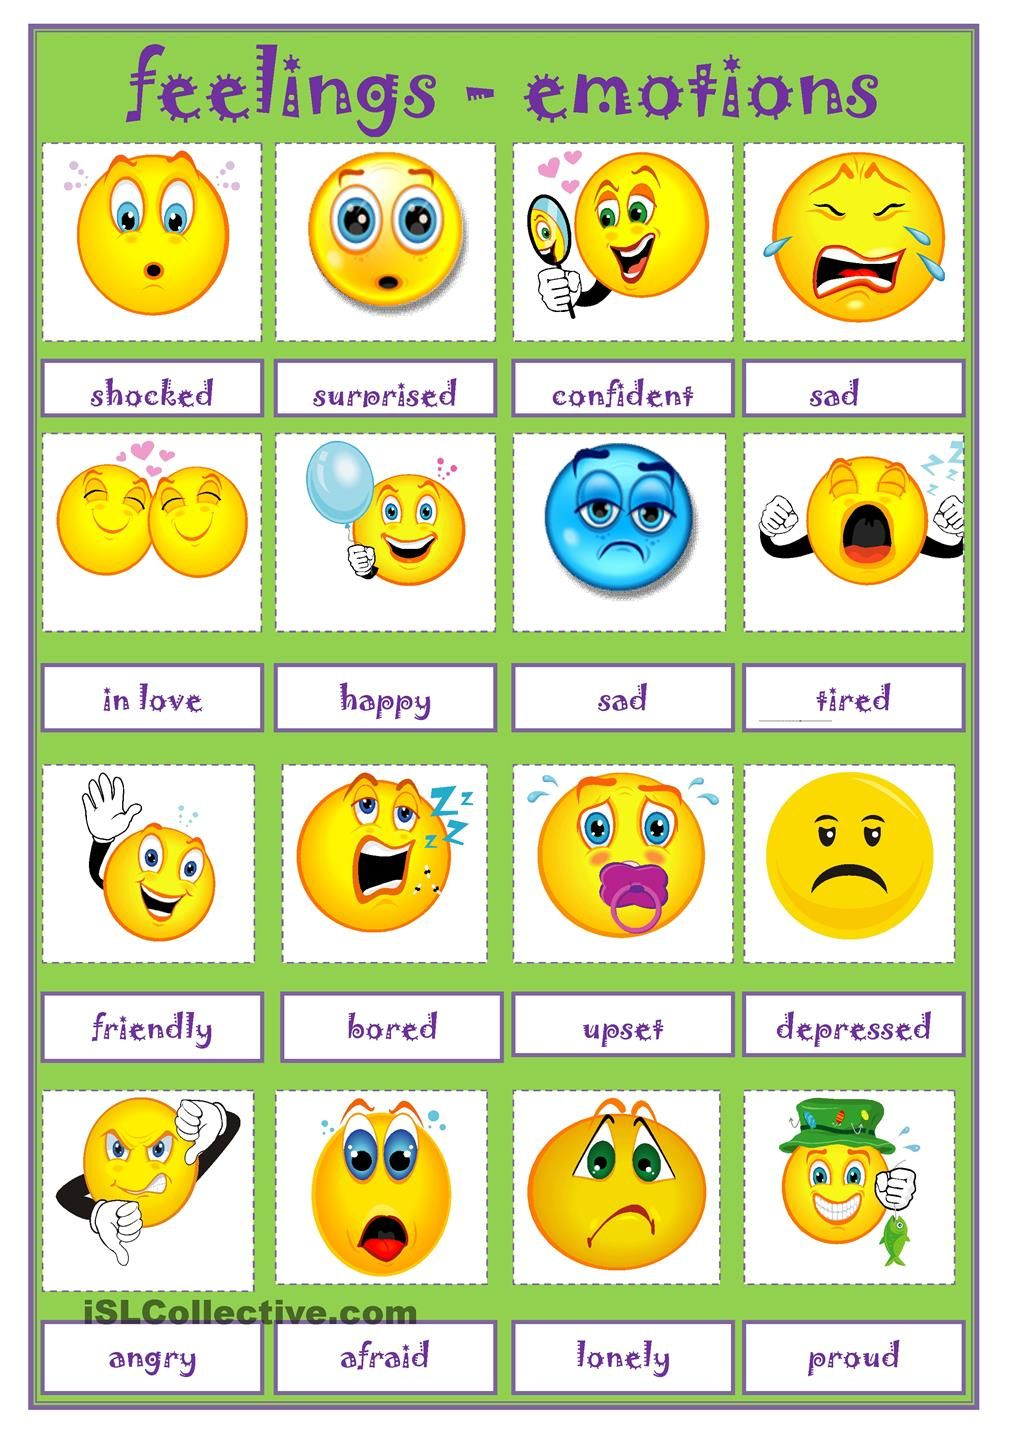 Self Expression Educational Learning Autism Toys Feeling Emotions Chart For Kids With 5 Faces